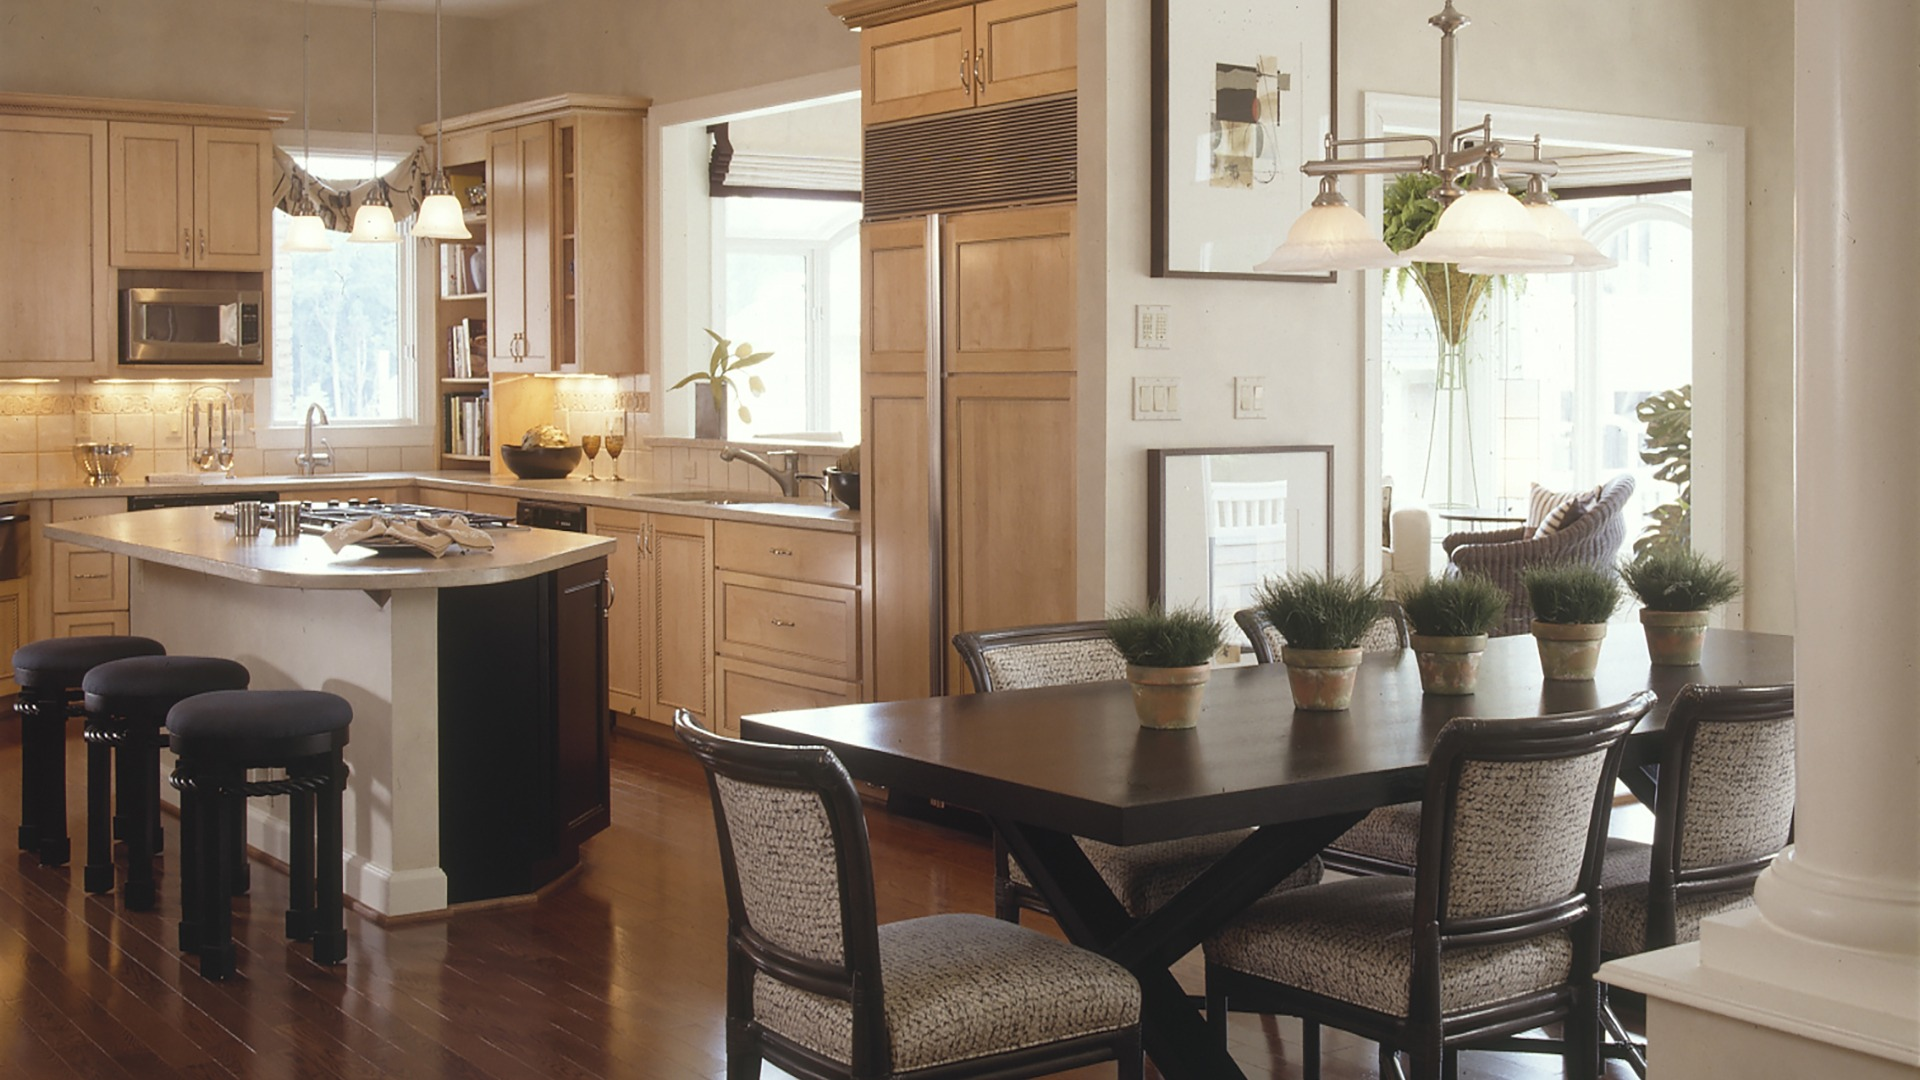 Woodley kitchen. Some optional features shown. Kitchen has design has since been updated.